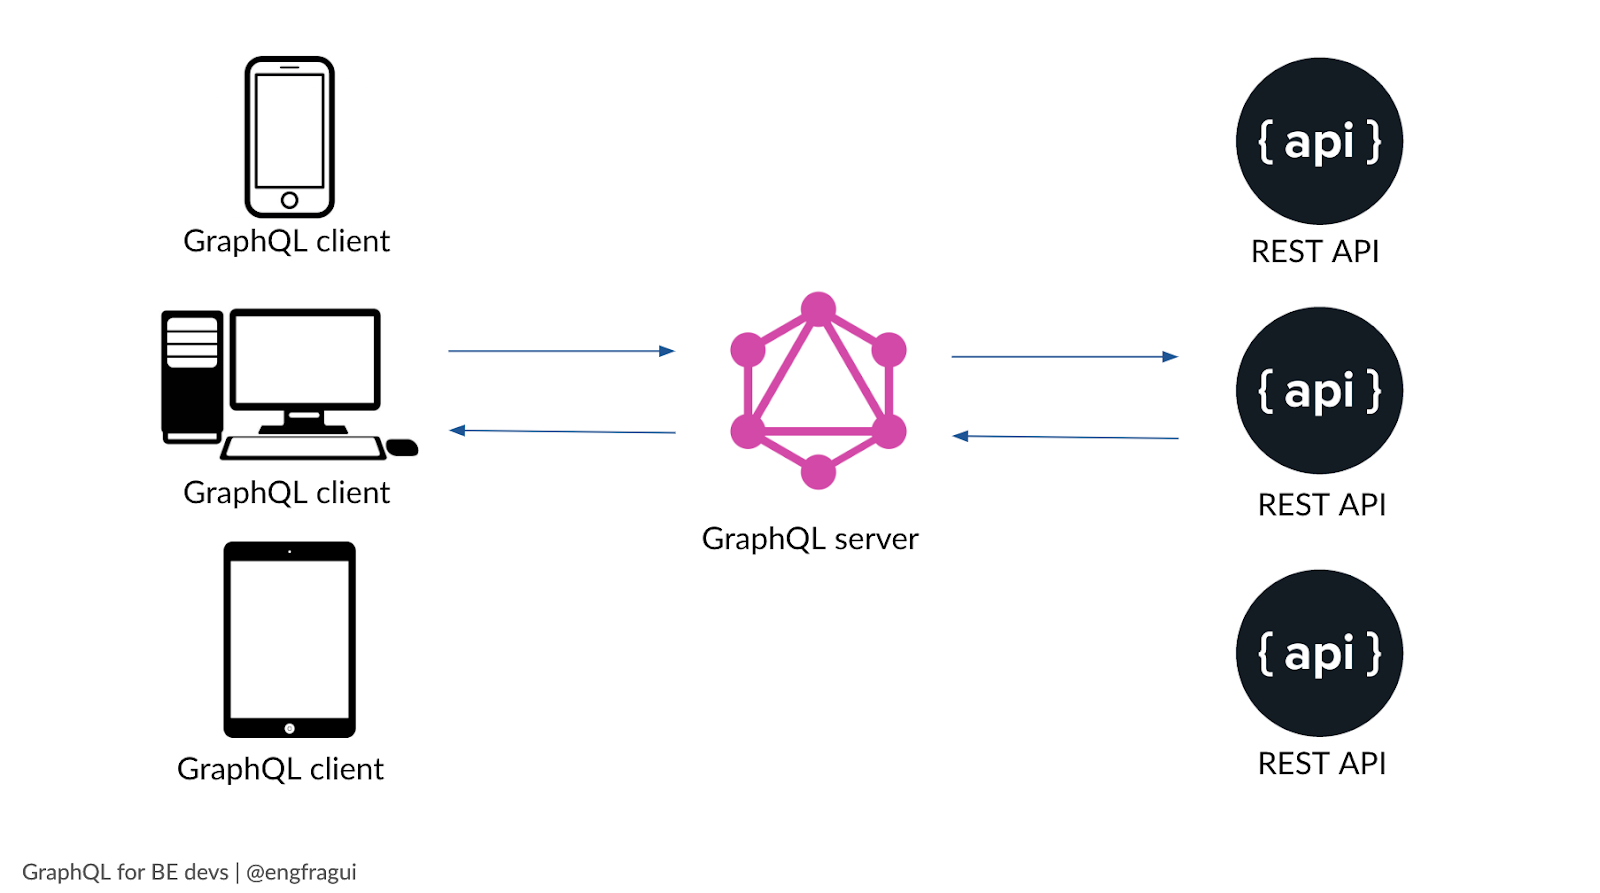 GraphQL architecture graphic - connection between graphql client, server, and multiple rest apis